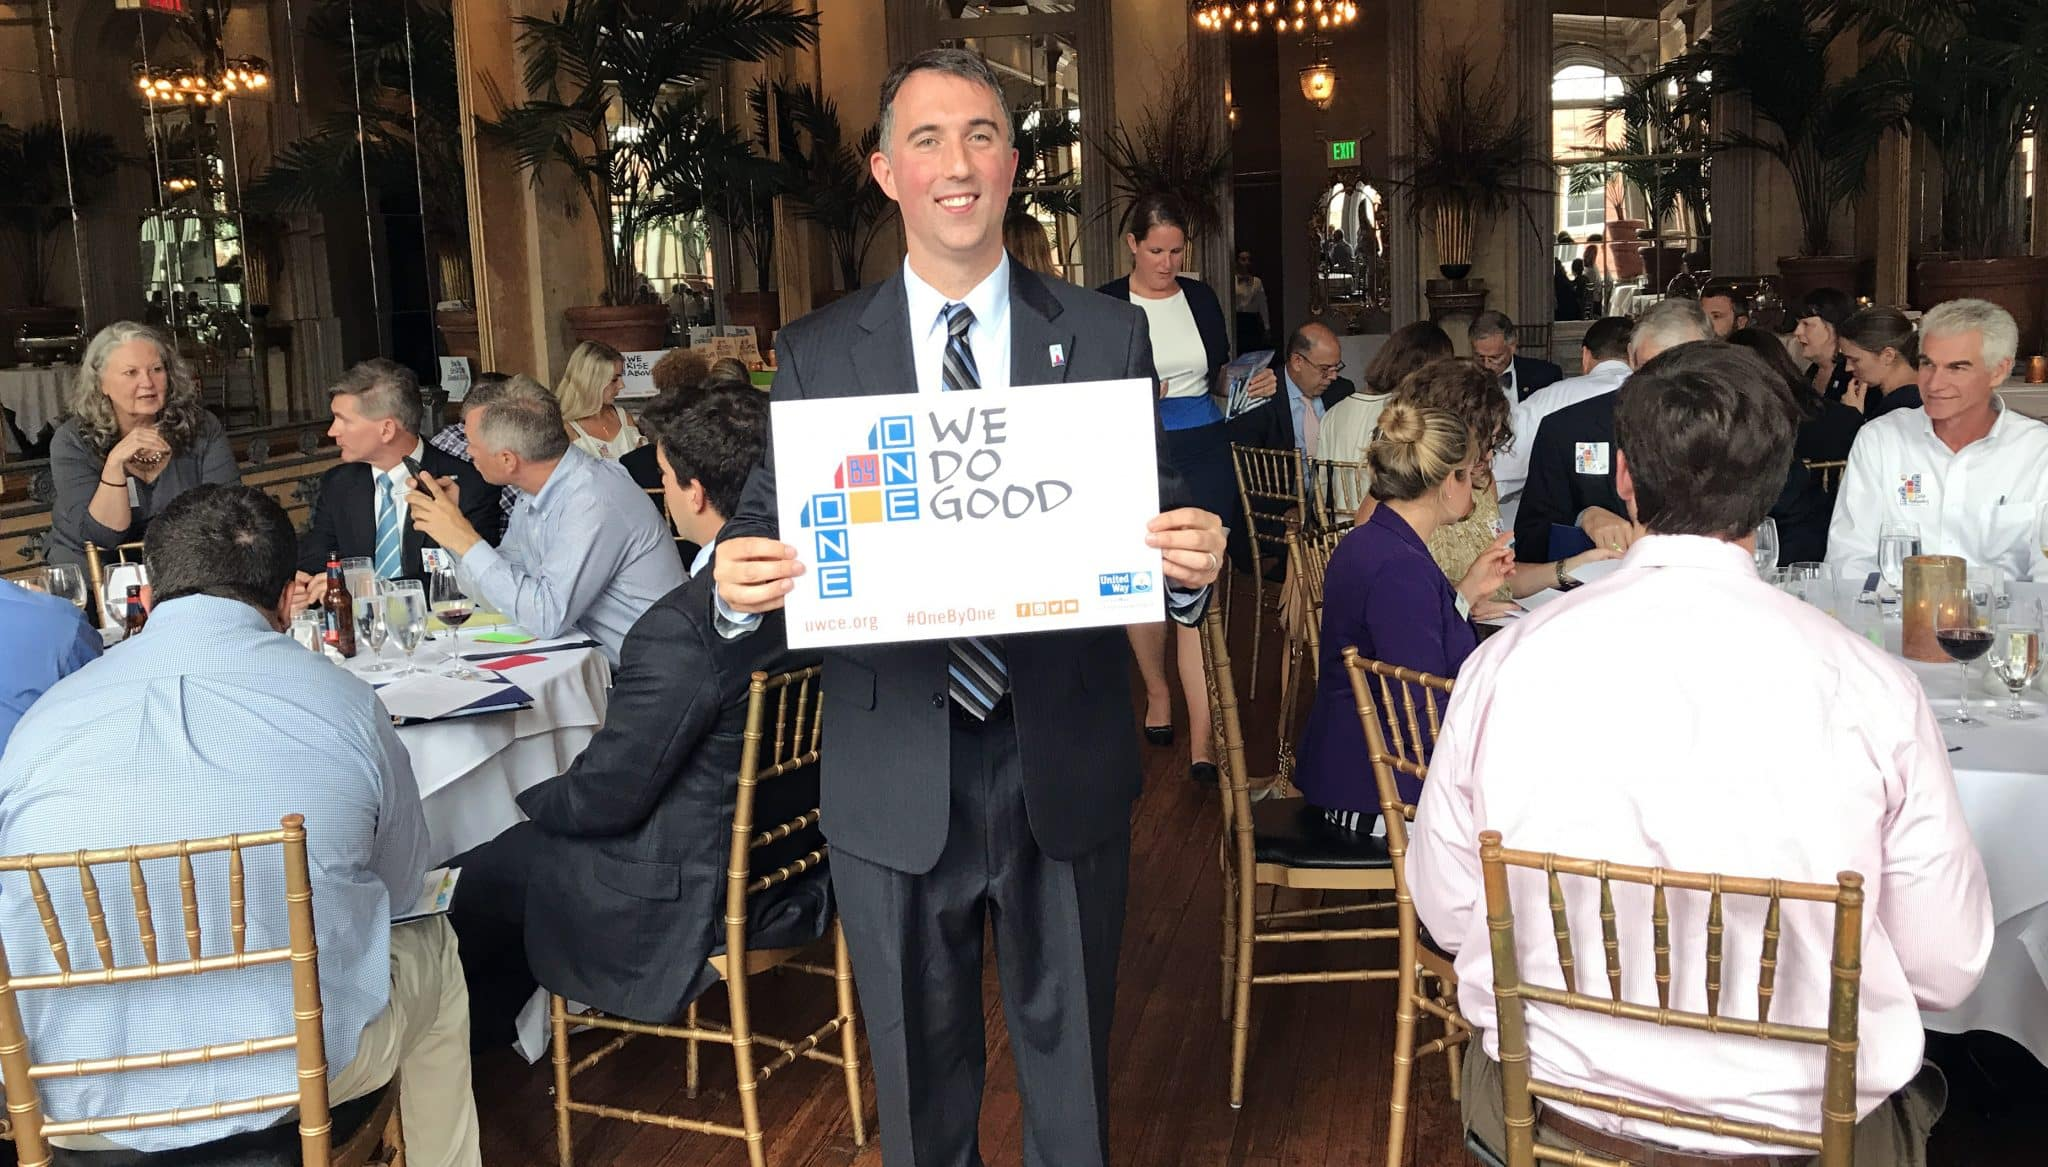 Dr. Todd Cellini Leads United Way's One By One Campaign